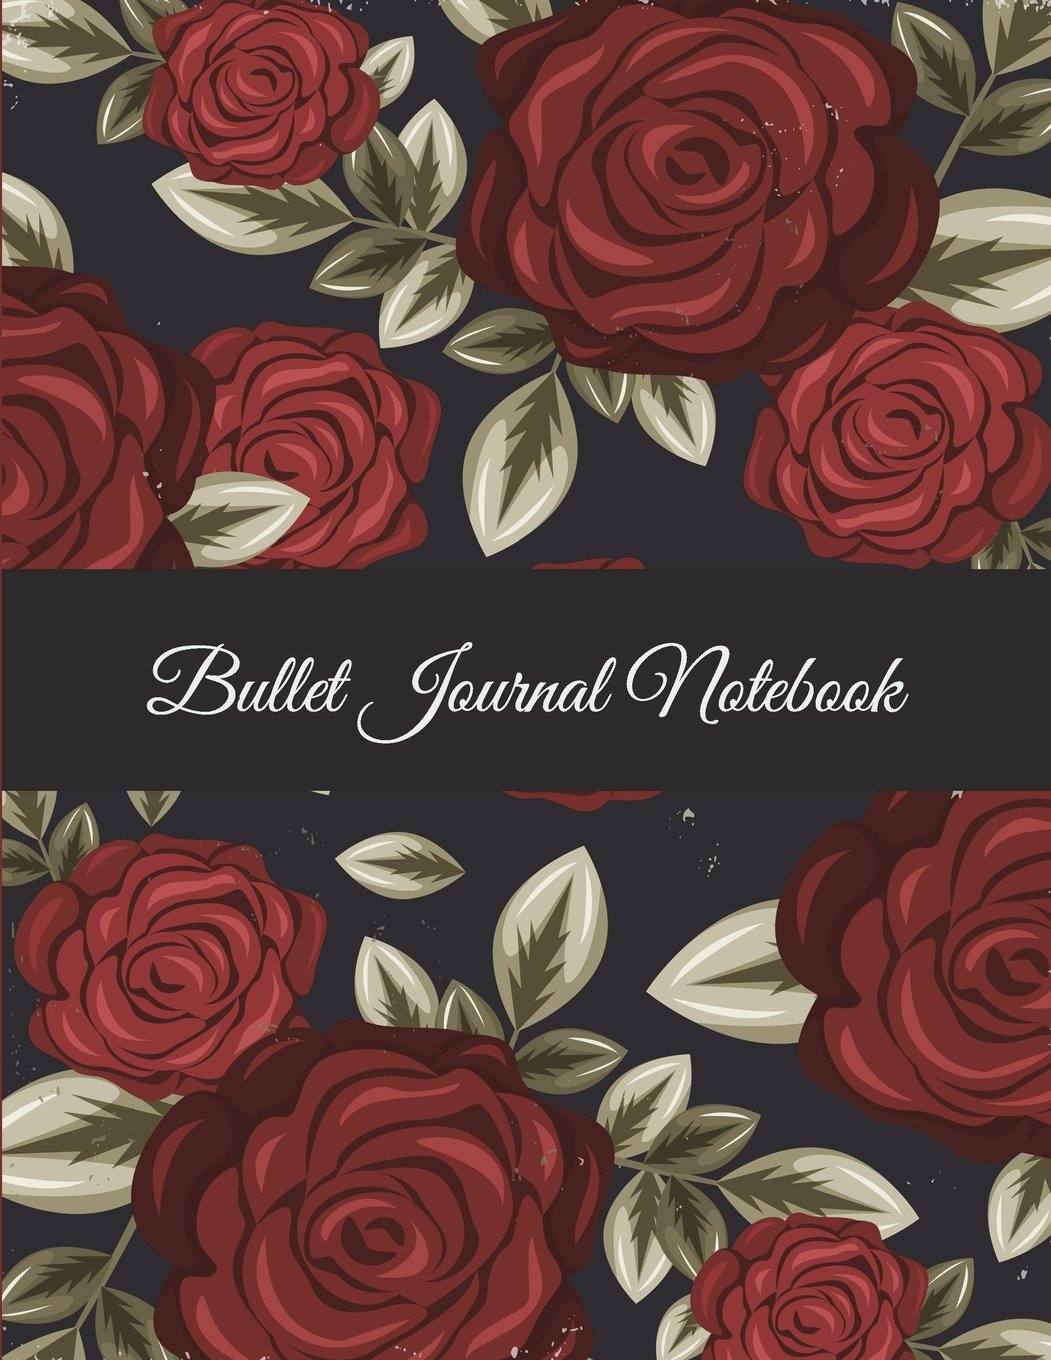 """Bullet Journal Notebook: Beauty Rose Flowers, Bullet Journal, Dot Grid Sketchbook Journal Large Size 8.5"""" x 11"""" Daily Notebook to Write in Dot Grid Notebook ebook"""